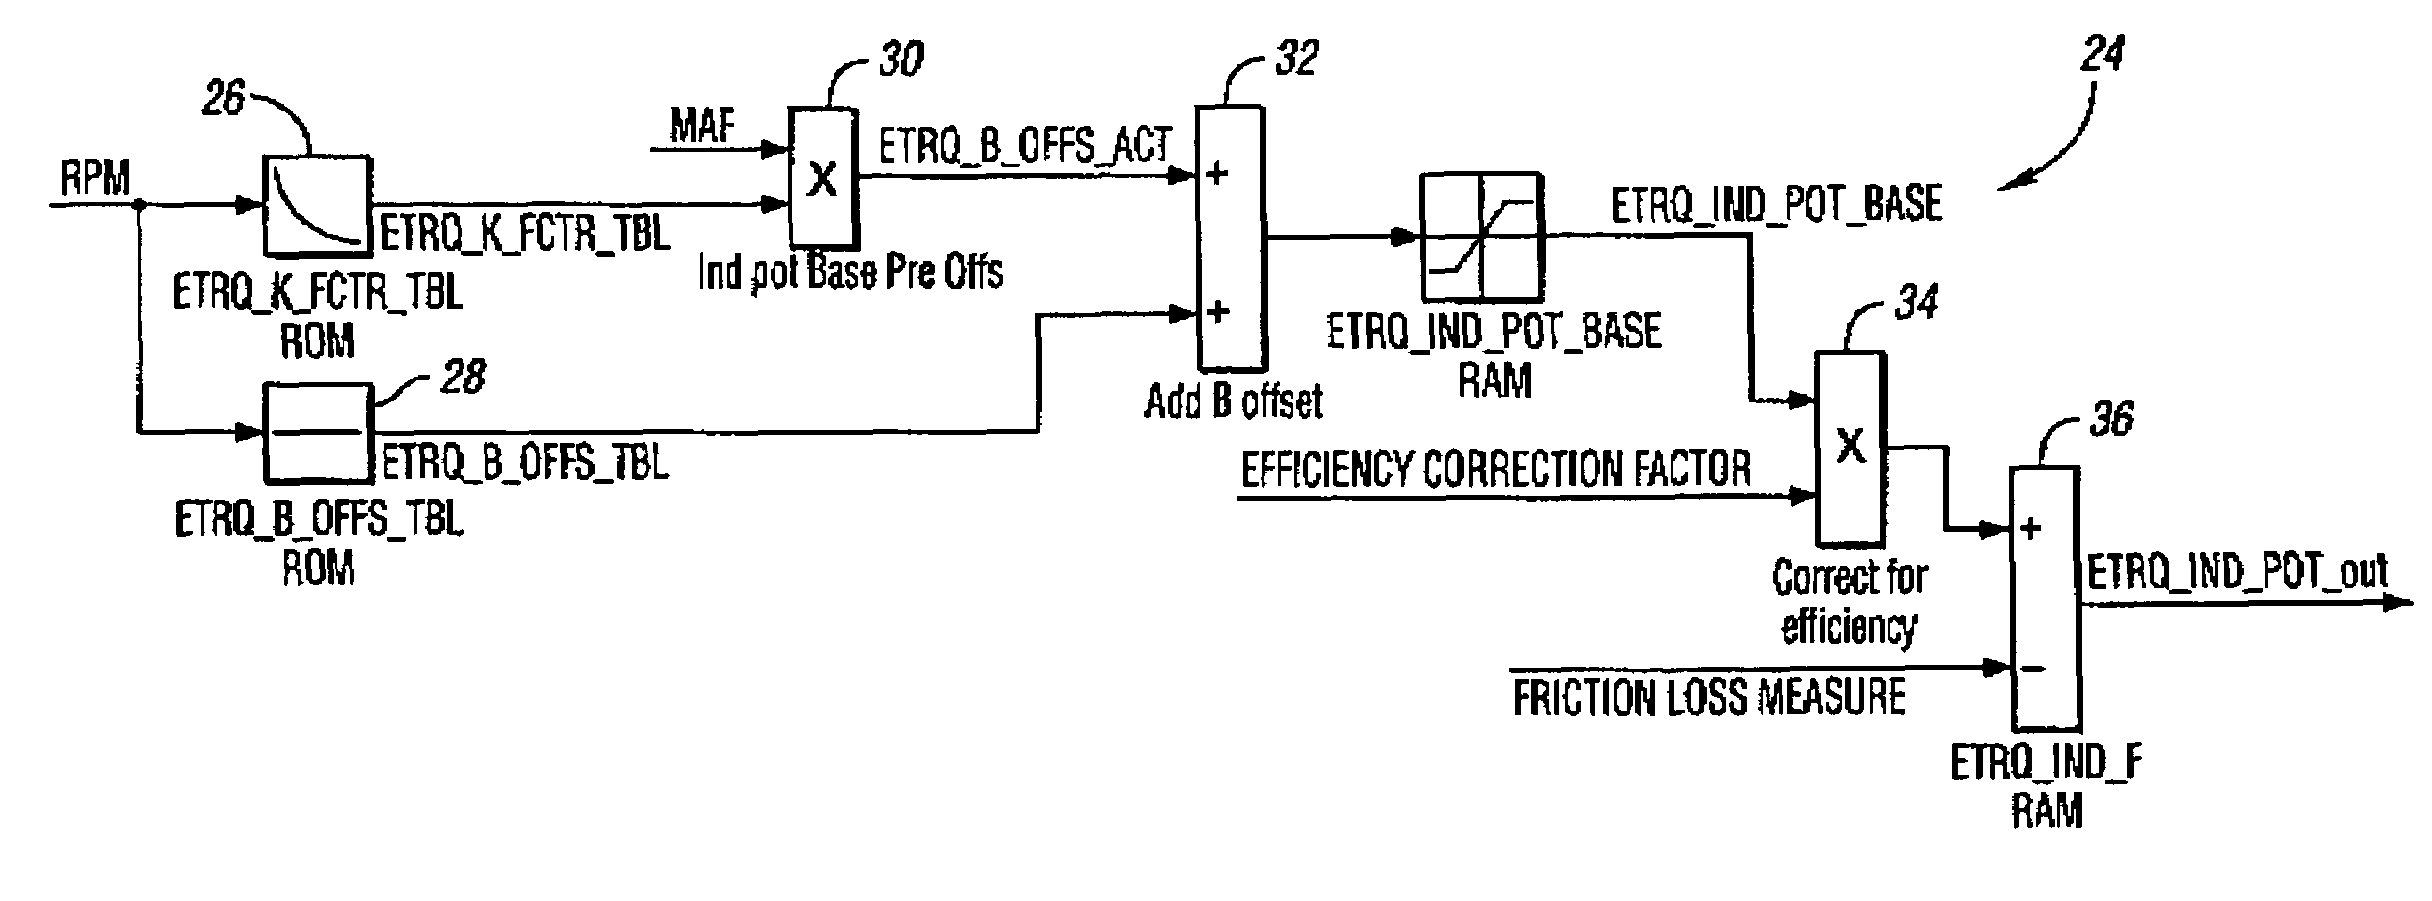 patent  airflow based output torque estimation  multi displacement engine google